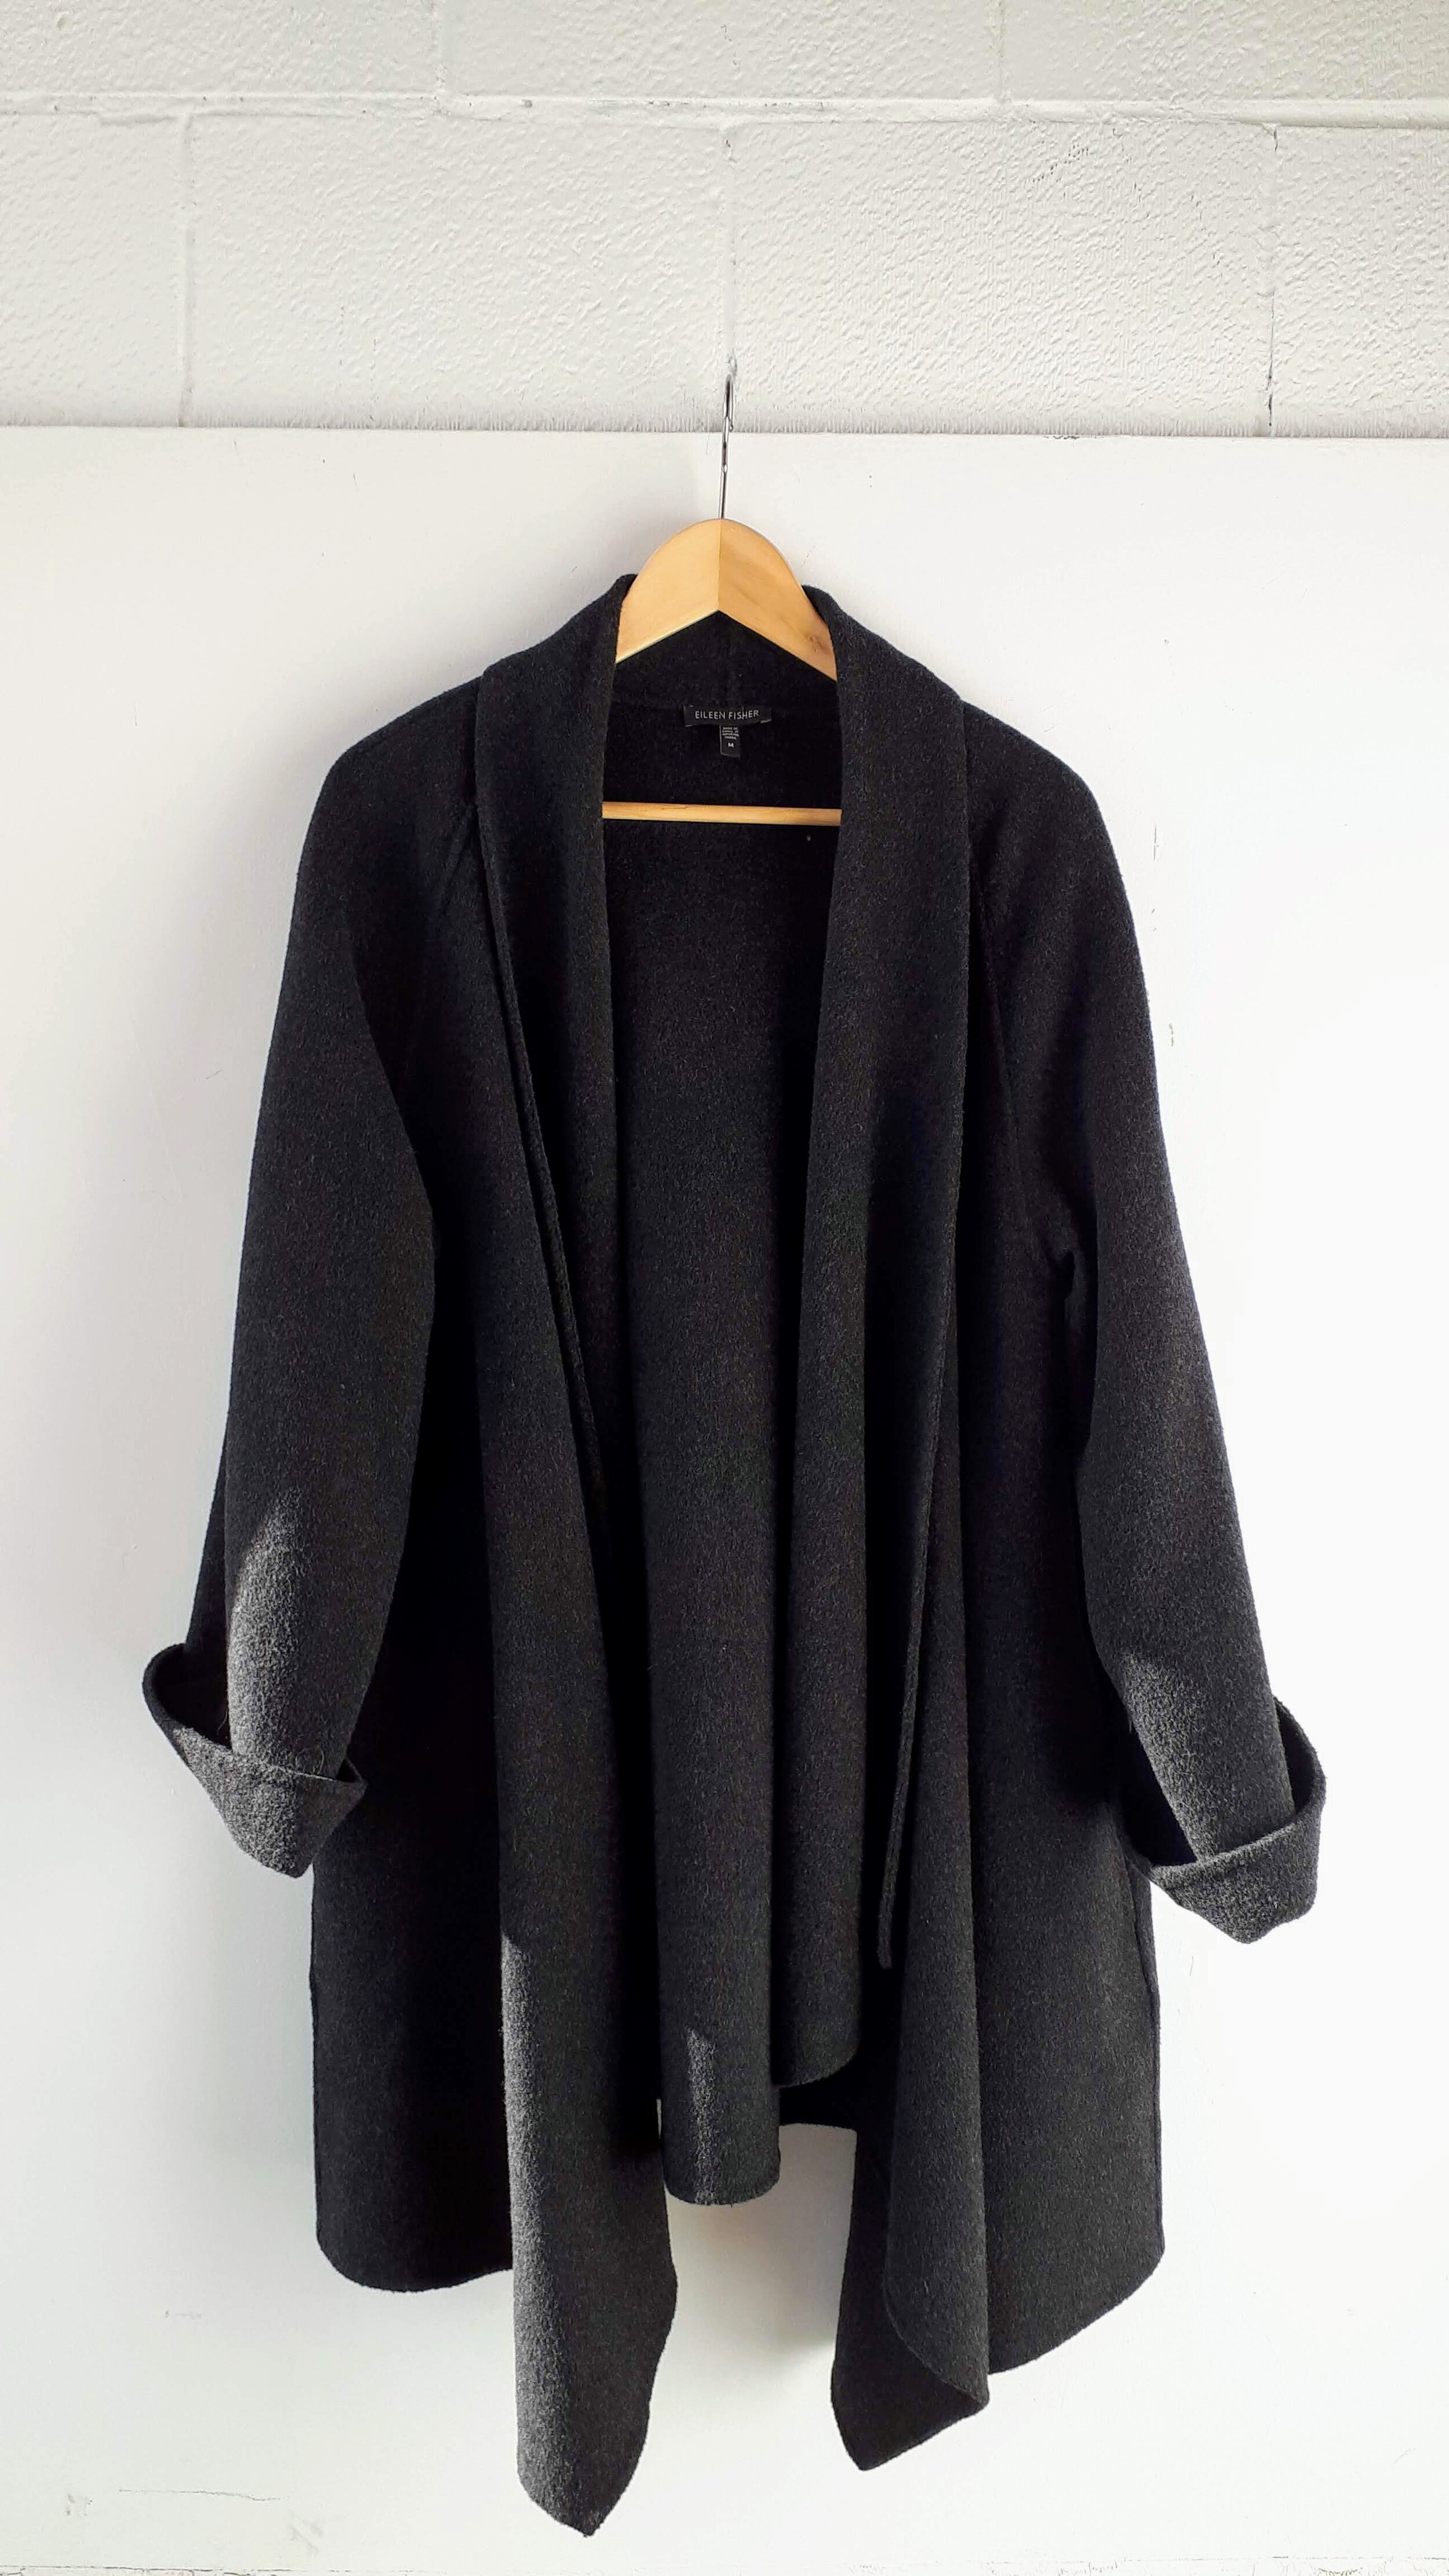 Eileen Fisher; Size M, $74